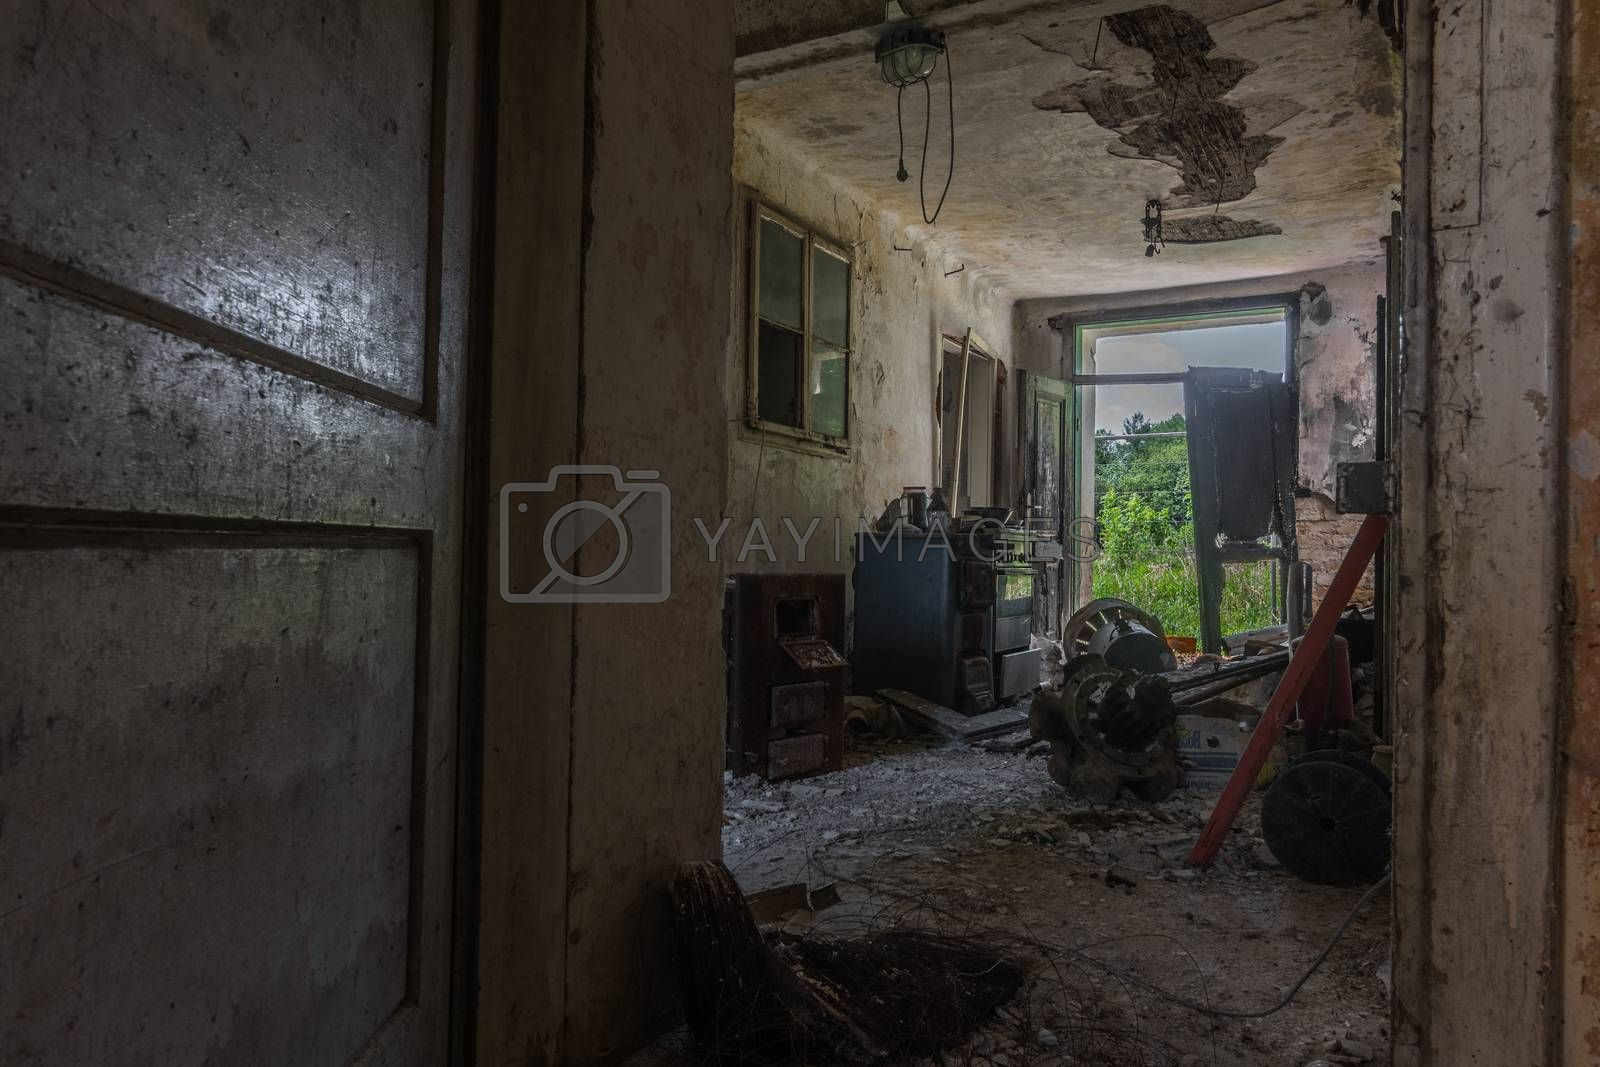 view into open room in an old house